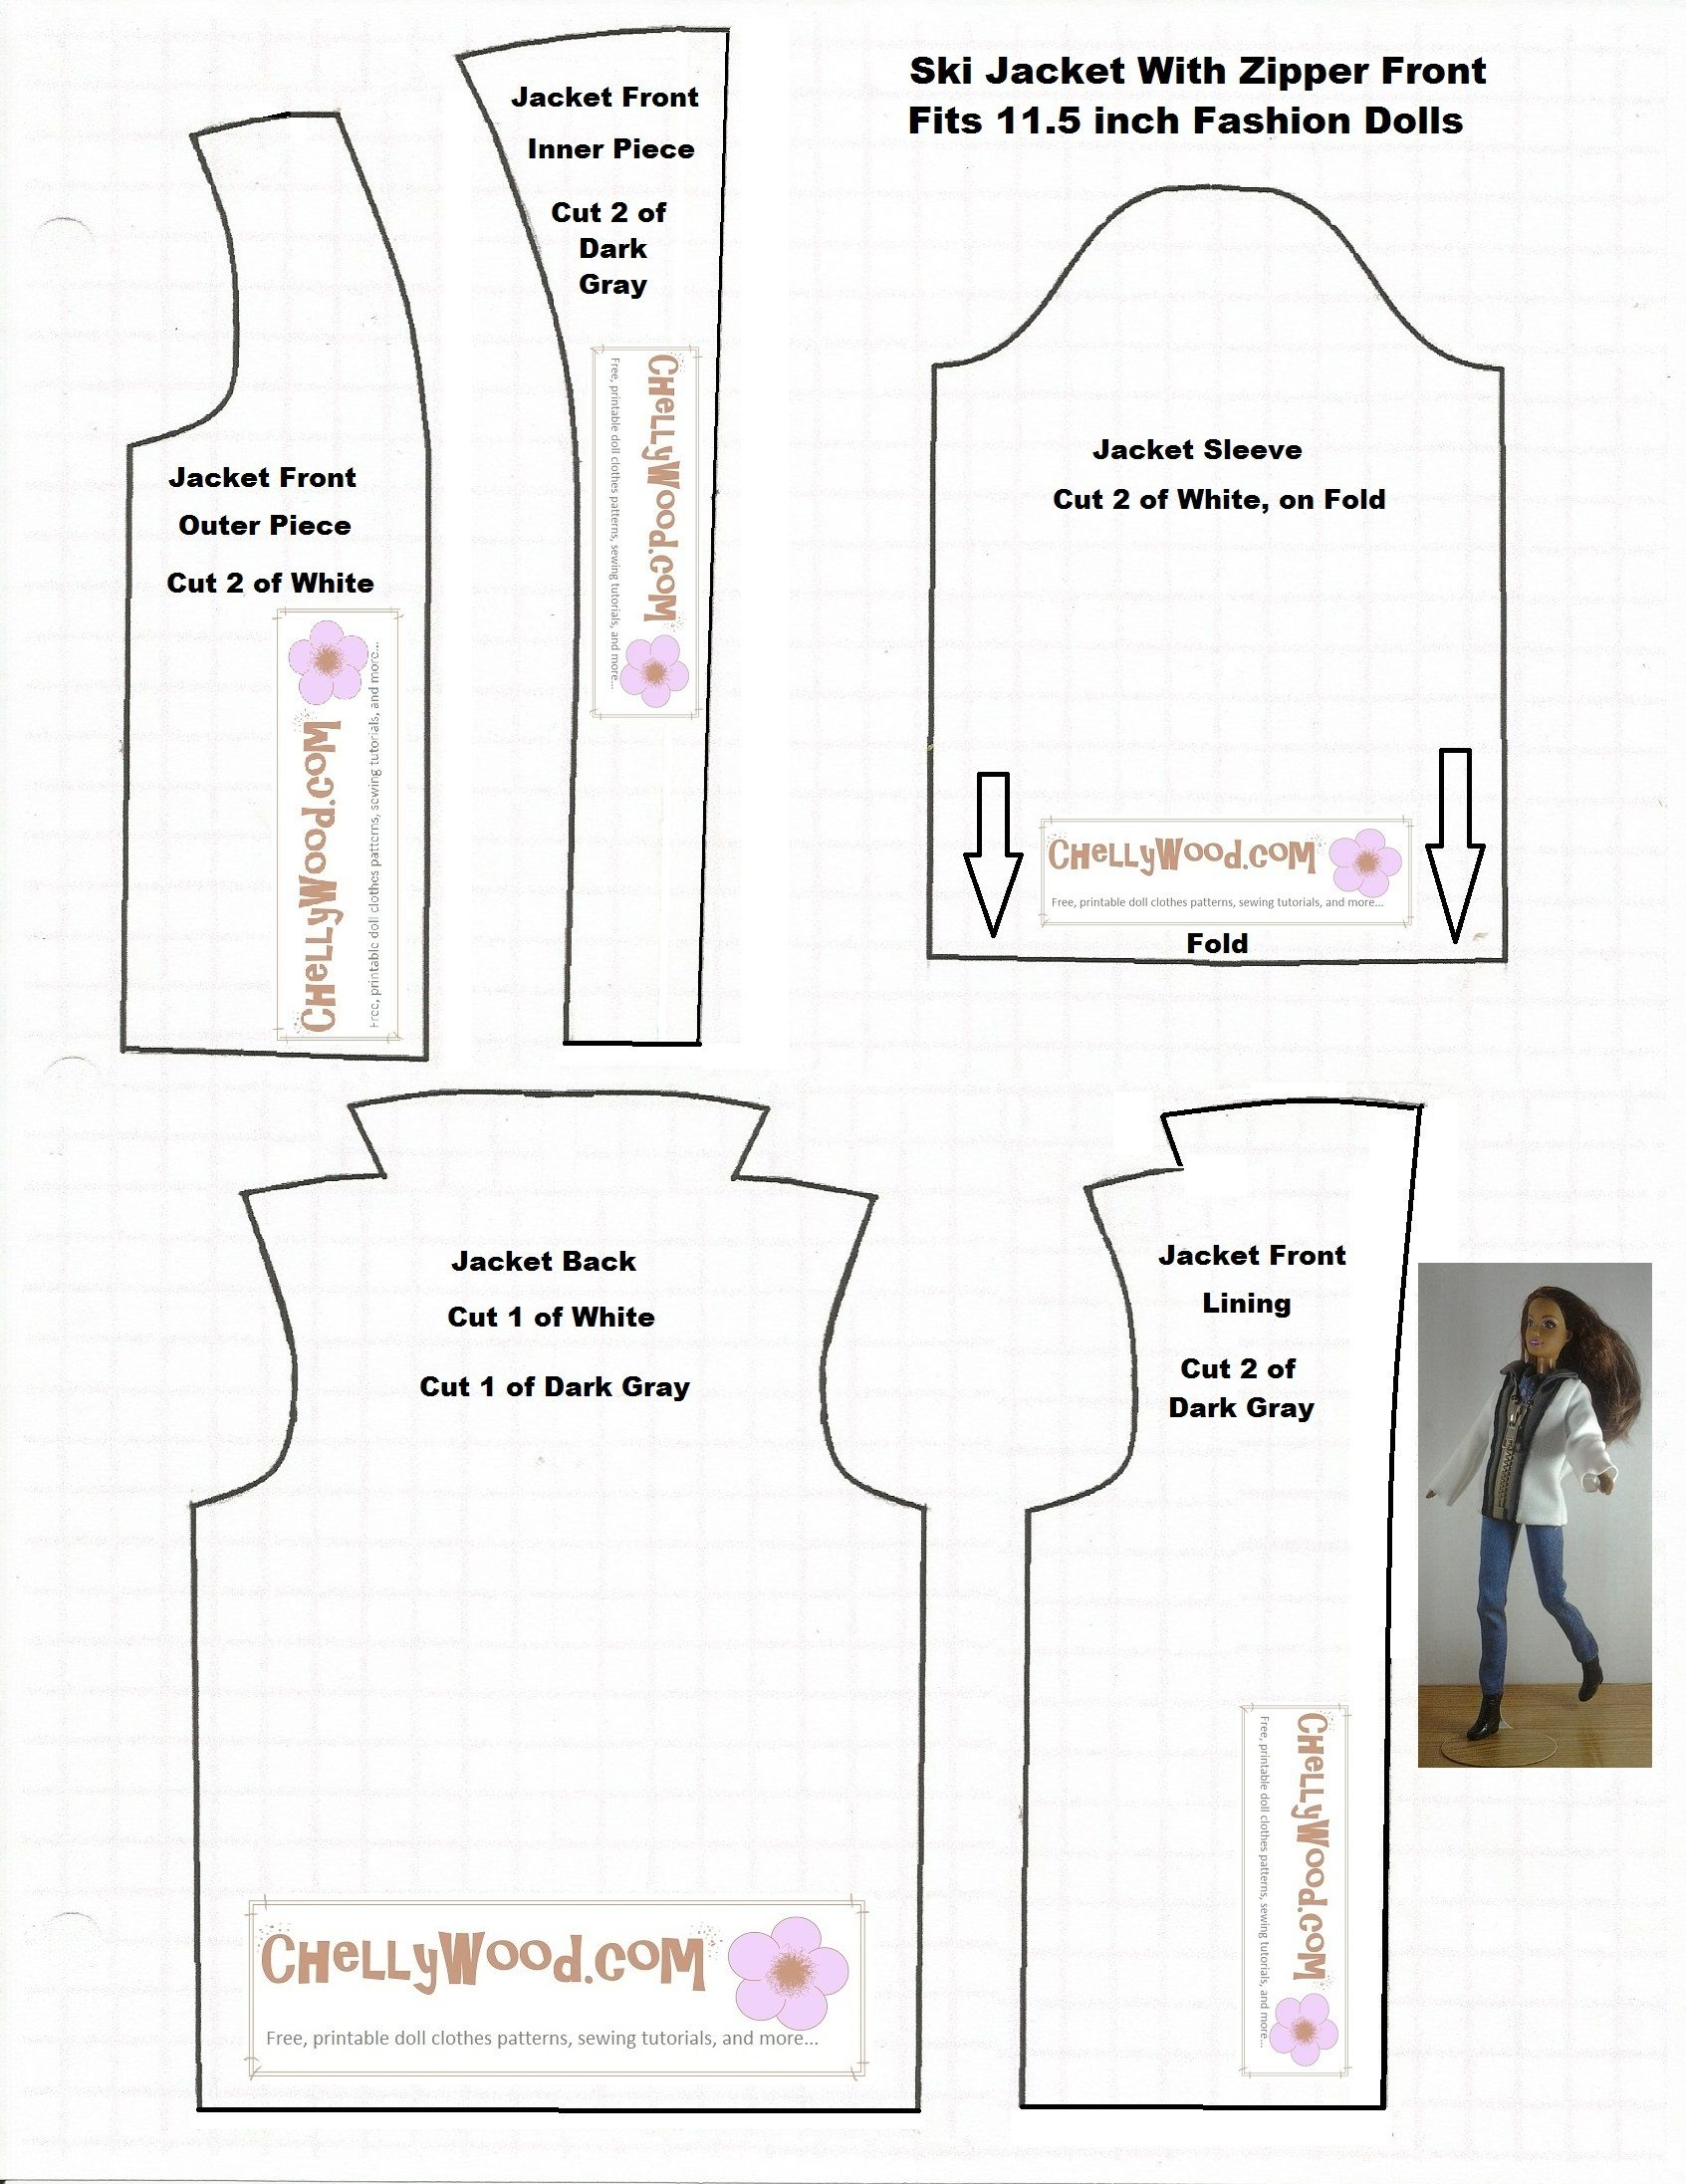 image regarding Printable Barbie Clothes Patterns referred to as No cost Printable Behaviors For Sewing Doll Apparel Totally free